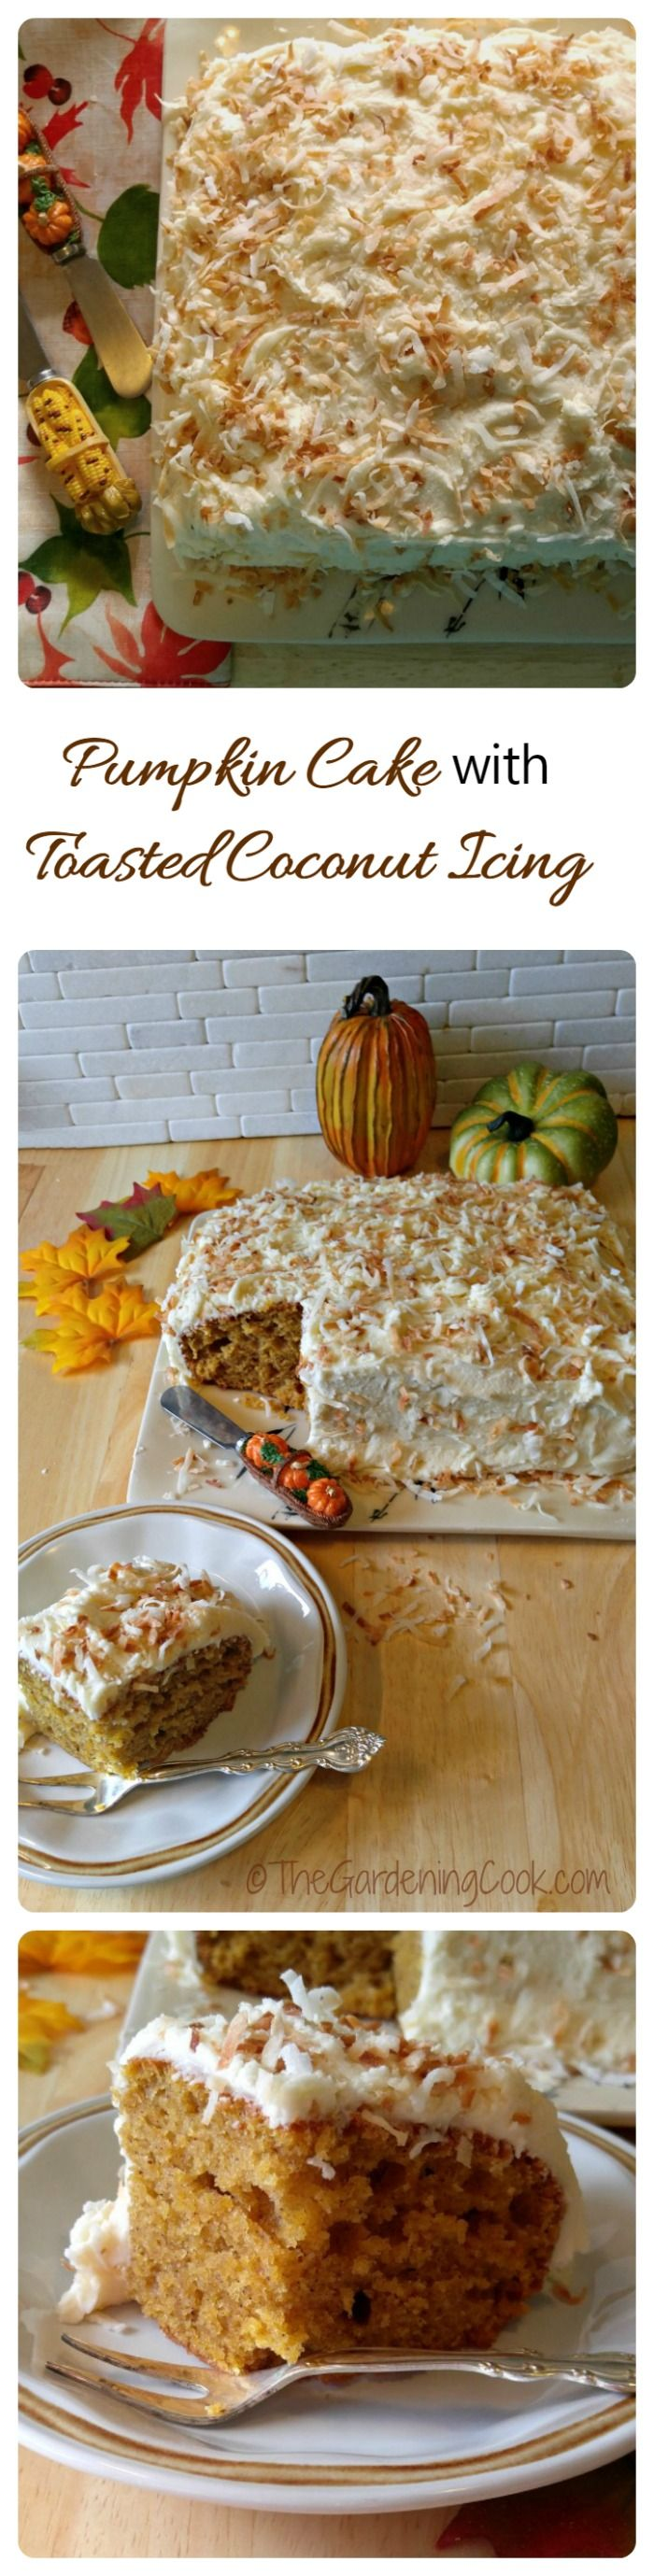 This pumpkin cake will be the hit of your Thanksgiving or Christmas celebration. It is moist and light and full of the flavor of autumn. The crunchy toasted coconut frosting adds a delicious touch. #BobsHolidayCheer #ad @bobsredmill